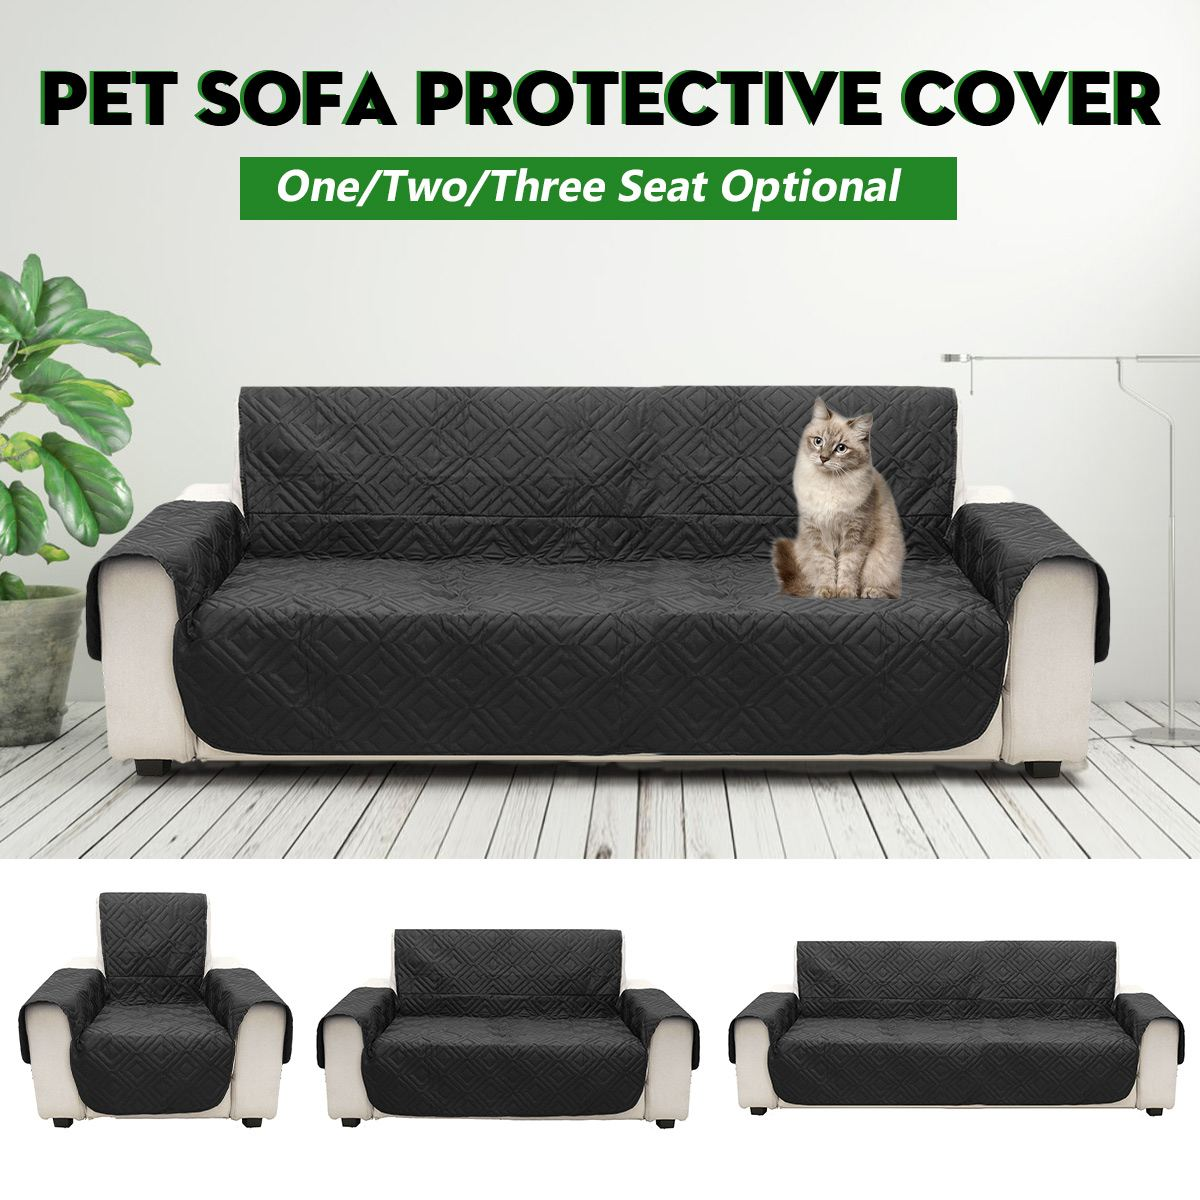 Prime Us 15 29 10 Off Black 1 2 3 Seat Pet Sofa Mat Couch Protective Cover Removable Waterproof Anti Slip Dog Cat Seat Cover In Sofa Cover From Home Gmtry Best Dining Table And Chair Ideas Images Gmtryco